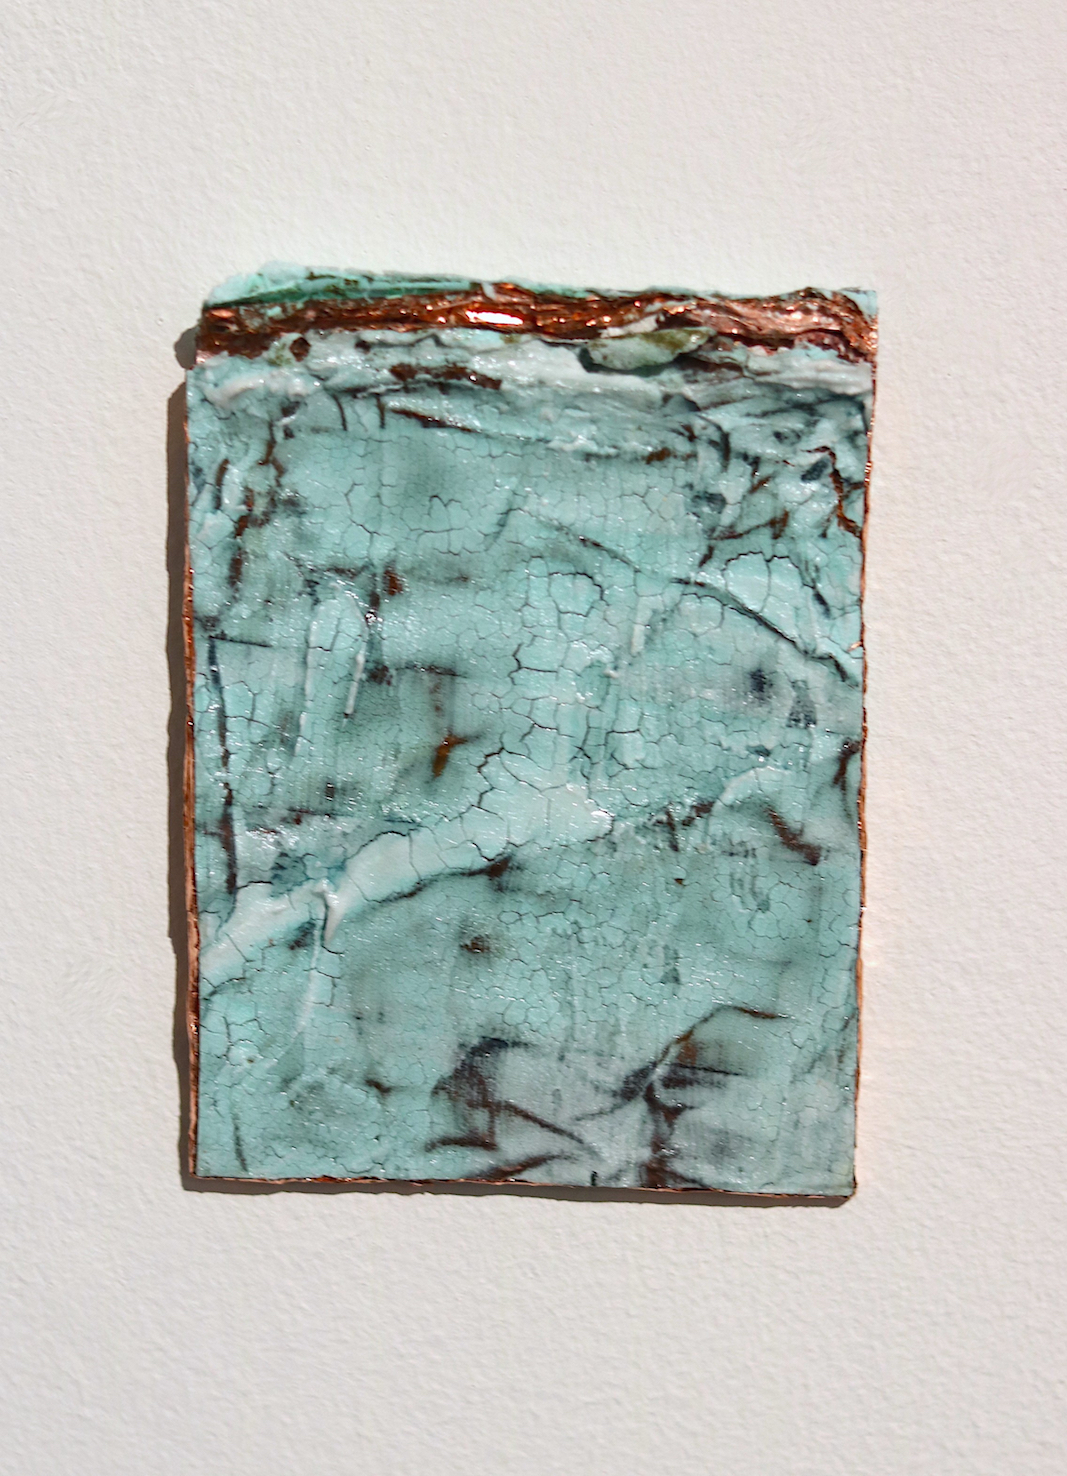 Half Burried | Charlie Franklin, 2019 | oil, watercolour, copper tape, patinated copper tape, plaster, scrim, felt tip pen, acrylic medium | 11.5 x 8.5 x 0.5cm | image: Mark Devereux Projects